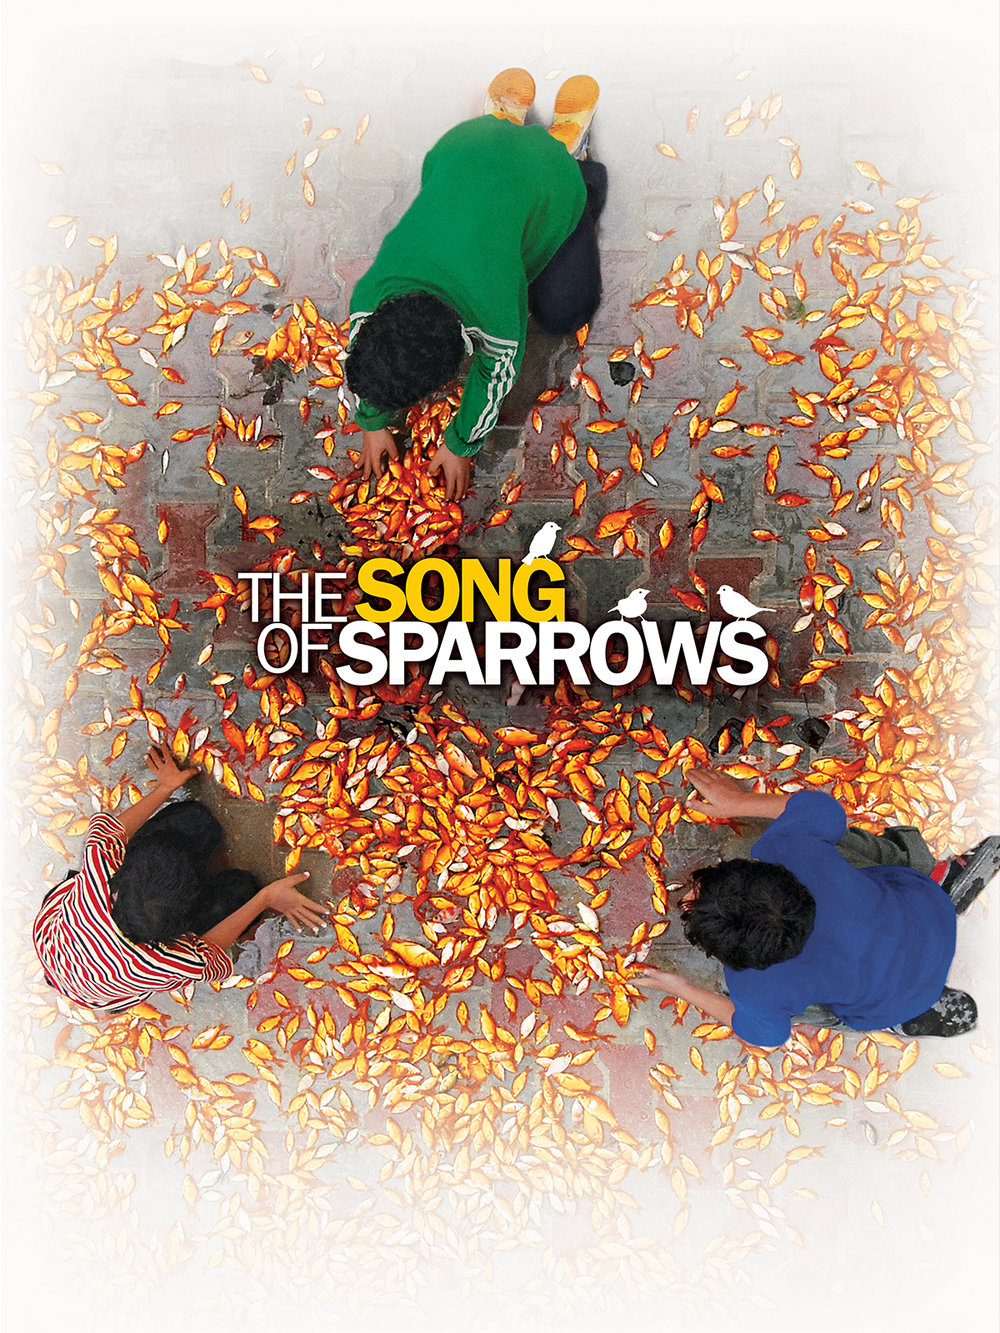 Here-SongOfSparrows-Full-Image-en-US.jpg